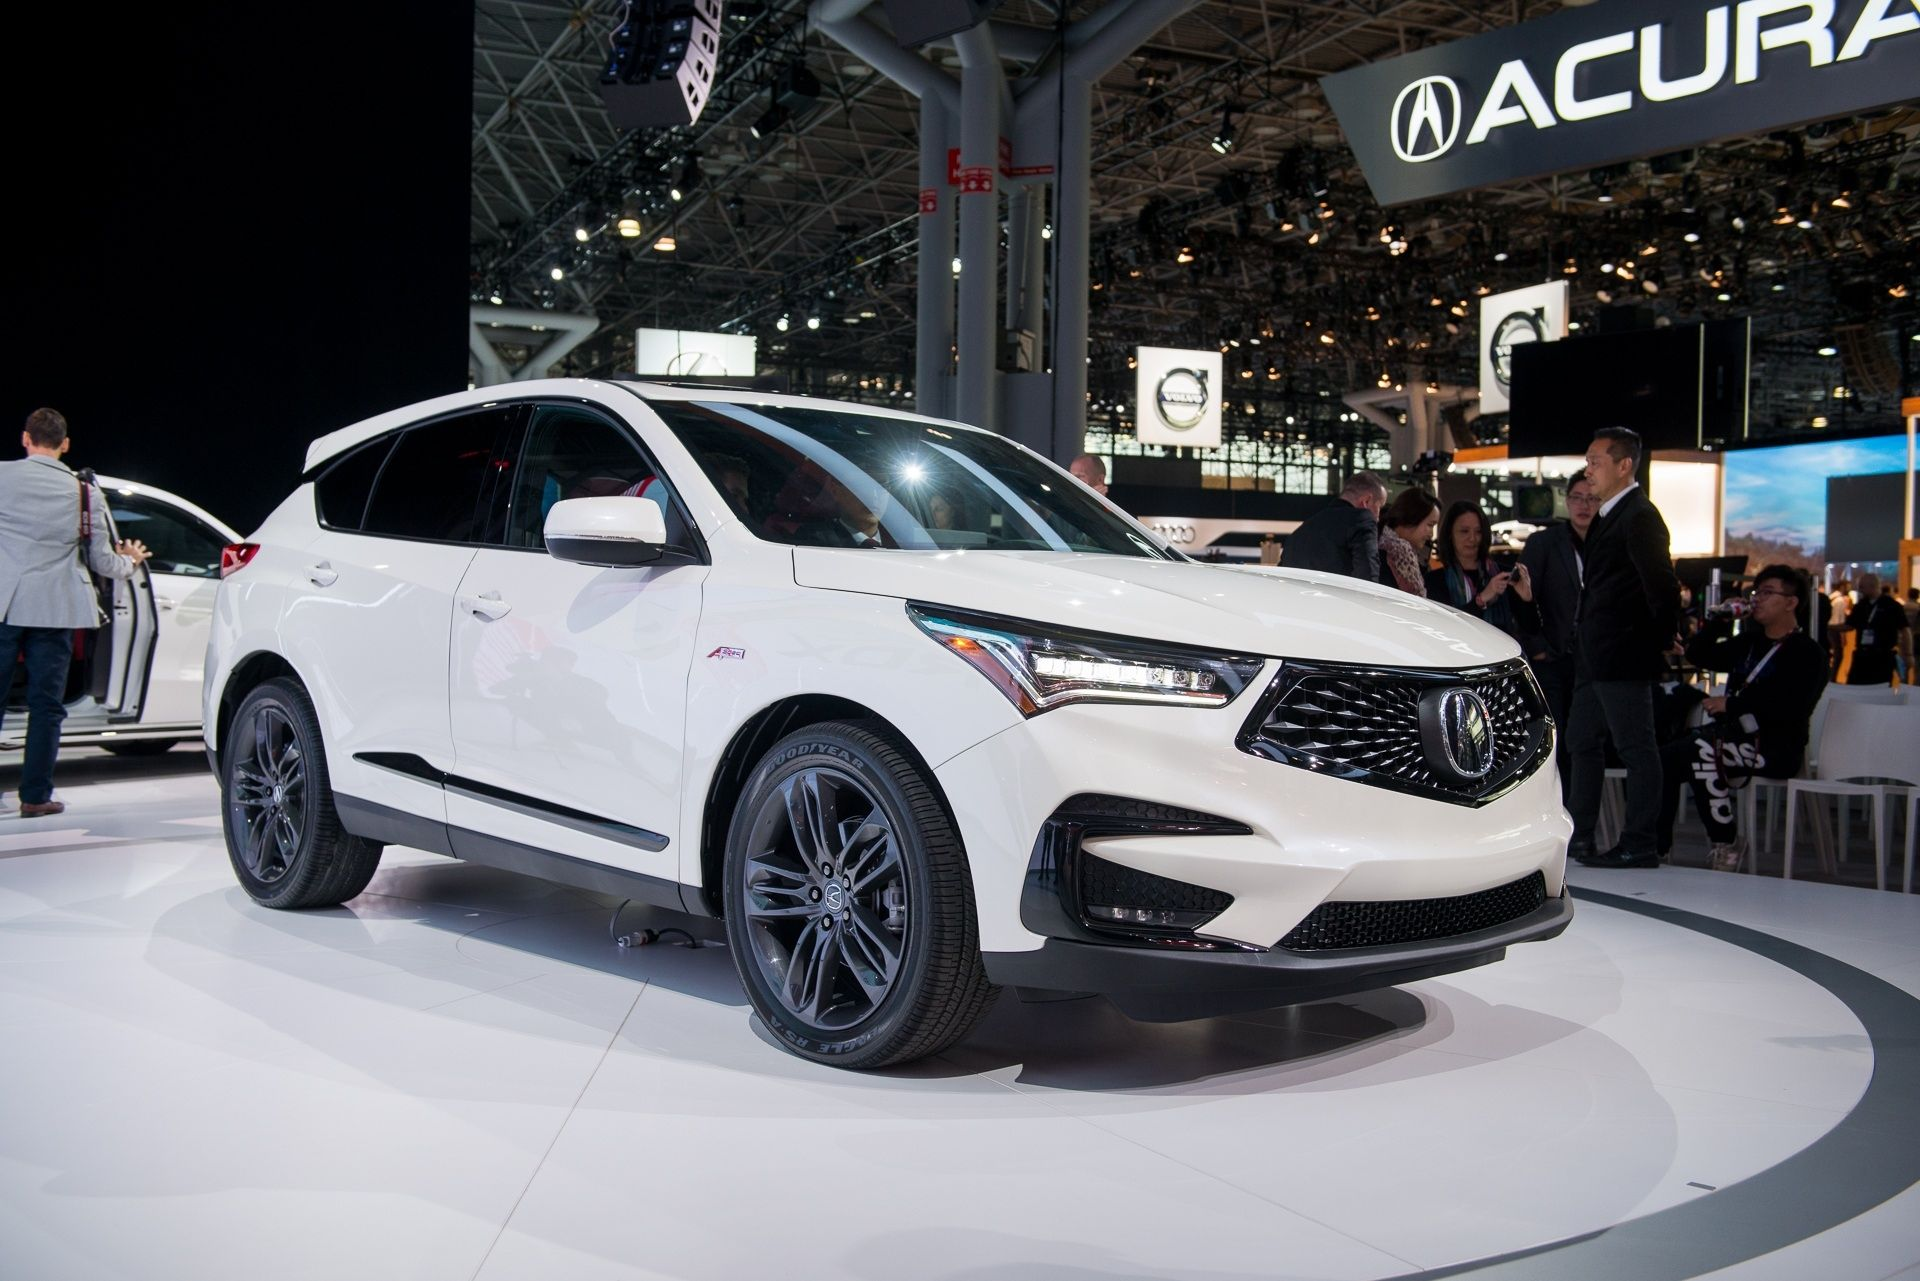 Will The 2019 Acura Rdx Have 4 Doors With Images Acura Rdx Acura Acura Mdx